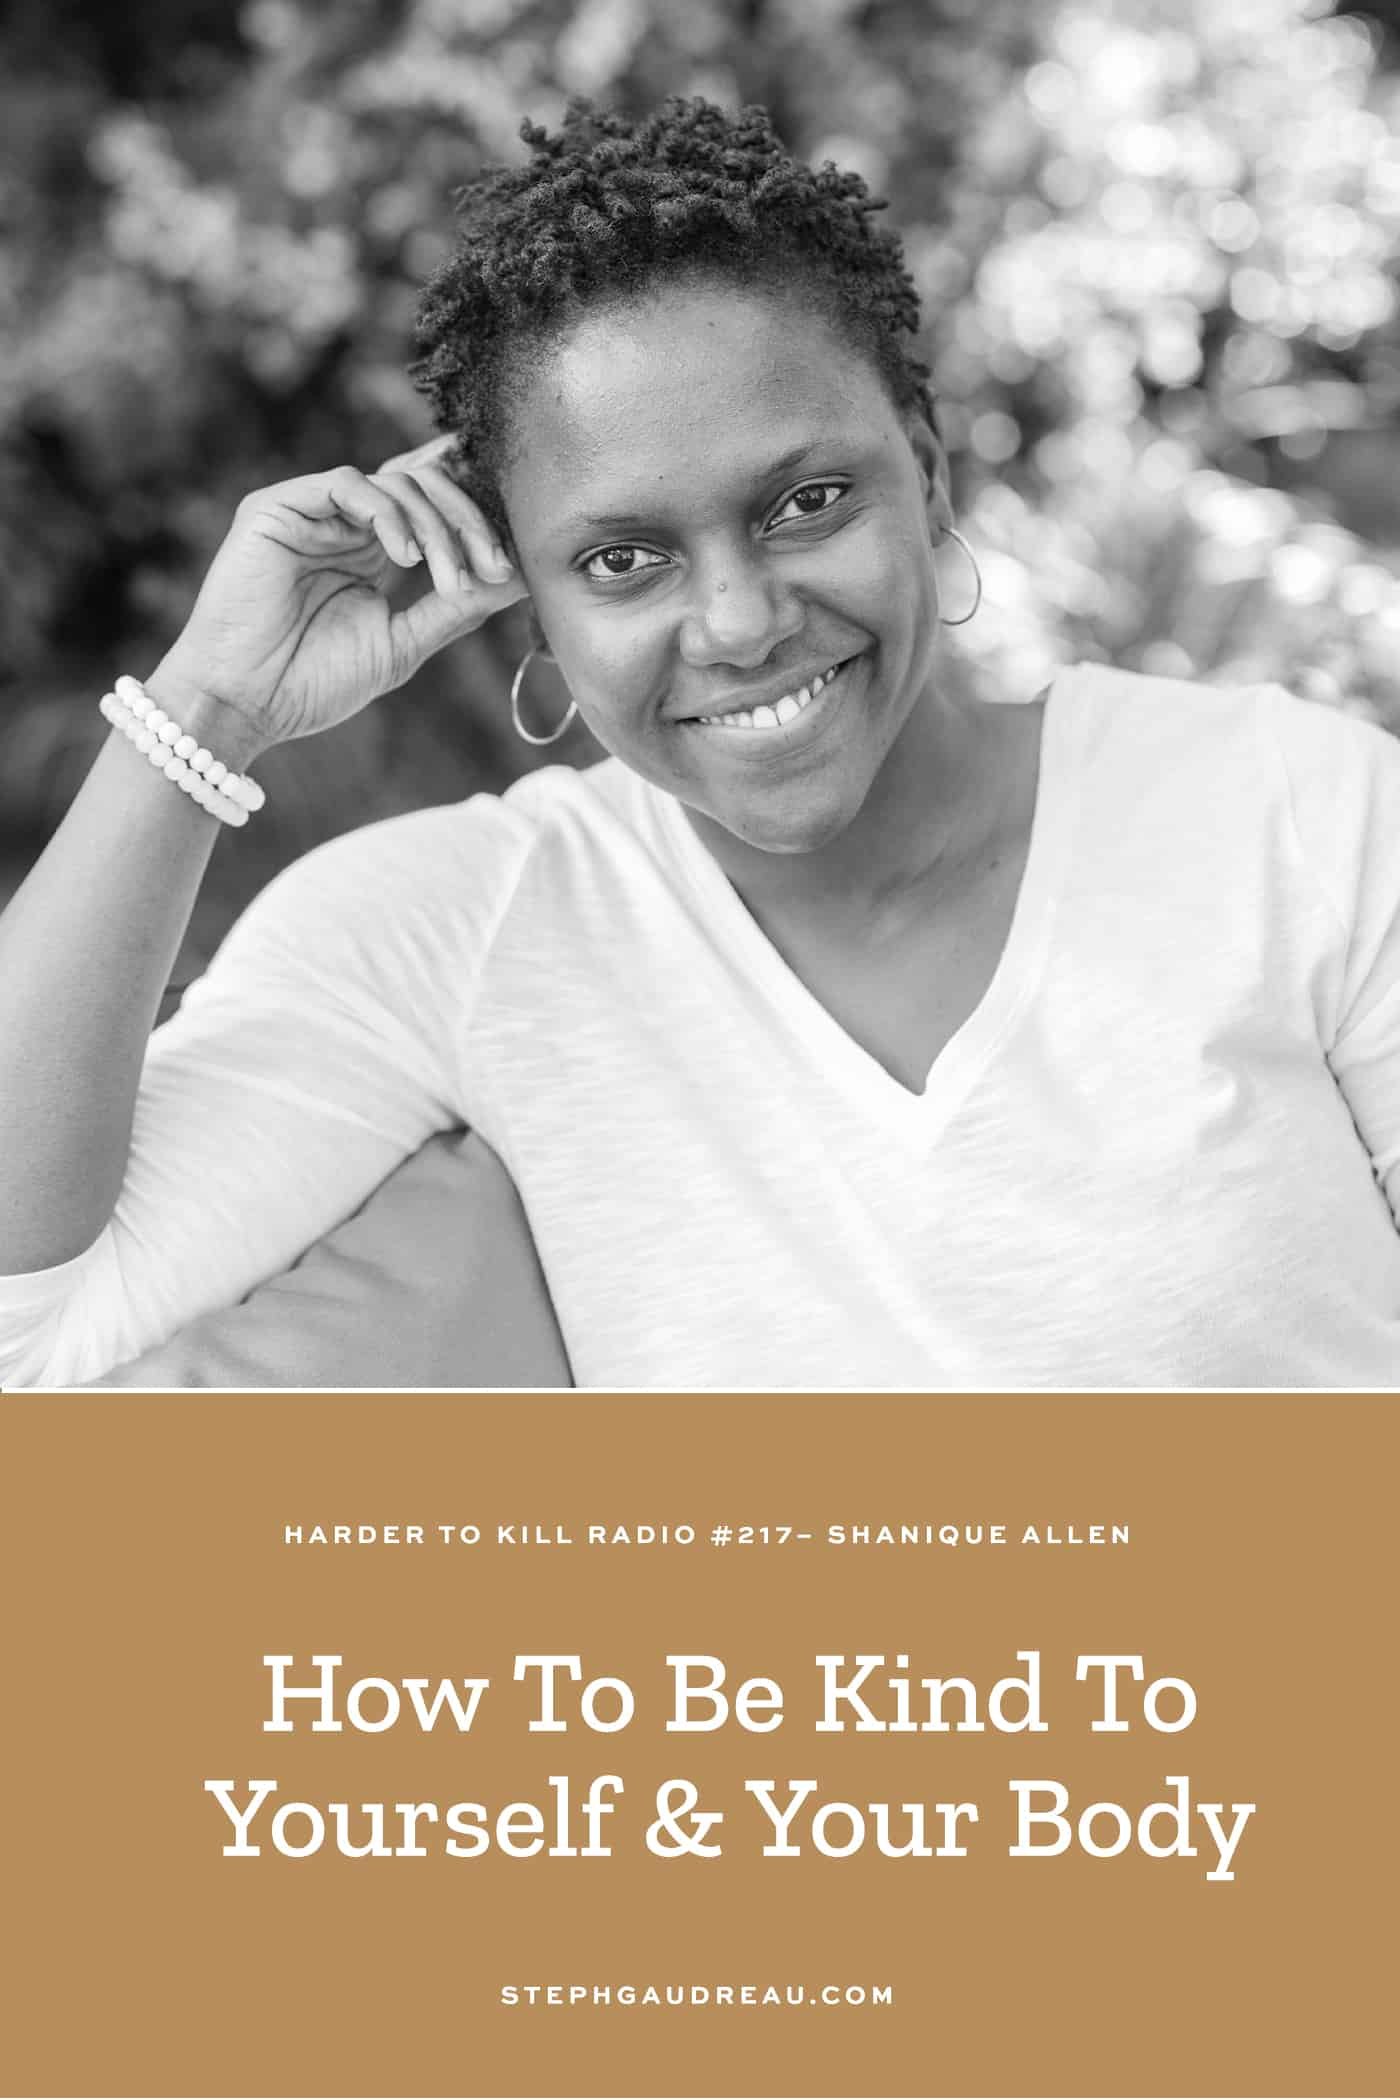 How To Be Kind To Yourself & Your Body w/ Shanique Allen – Harder to